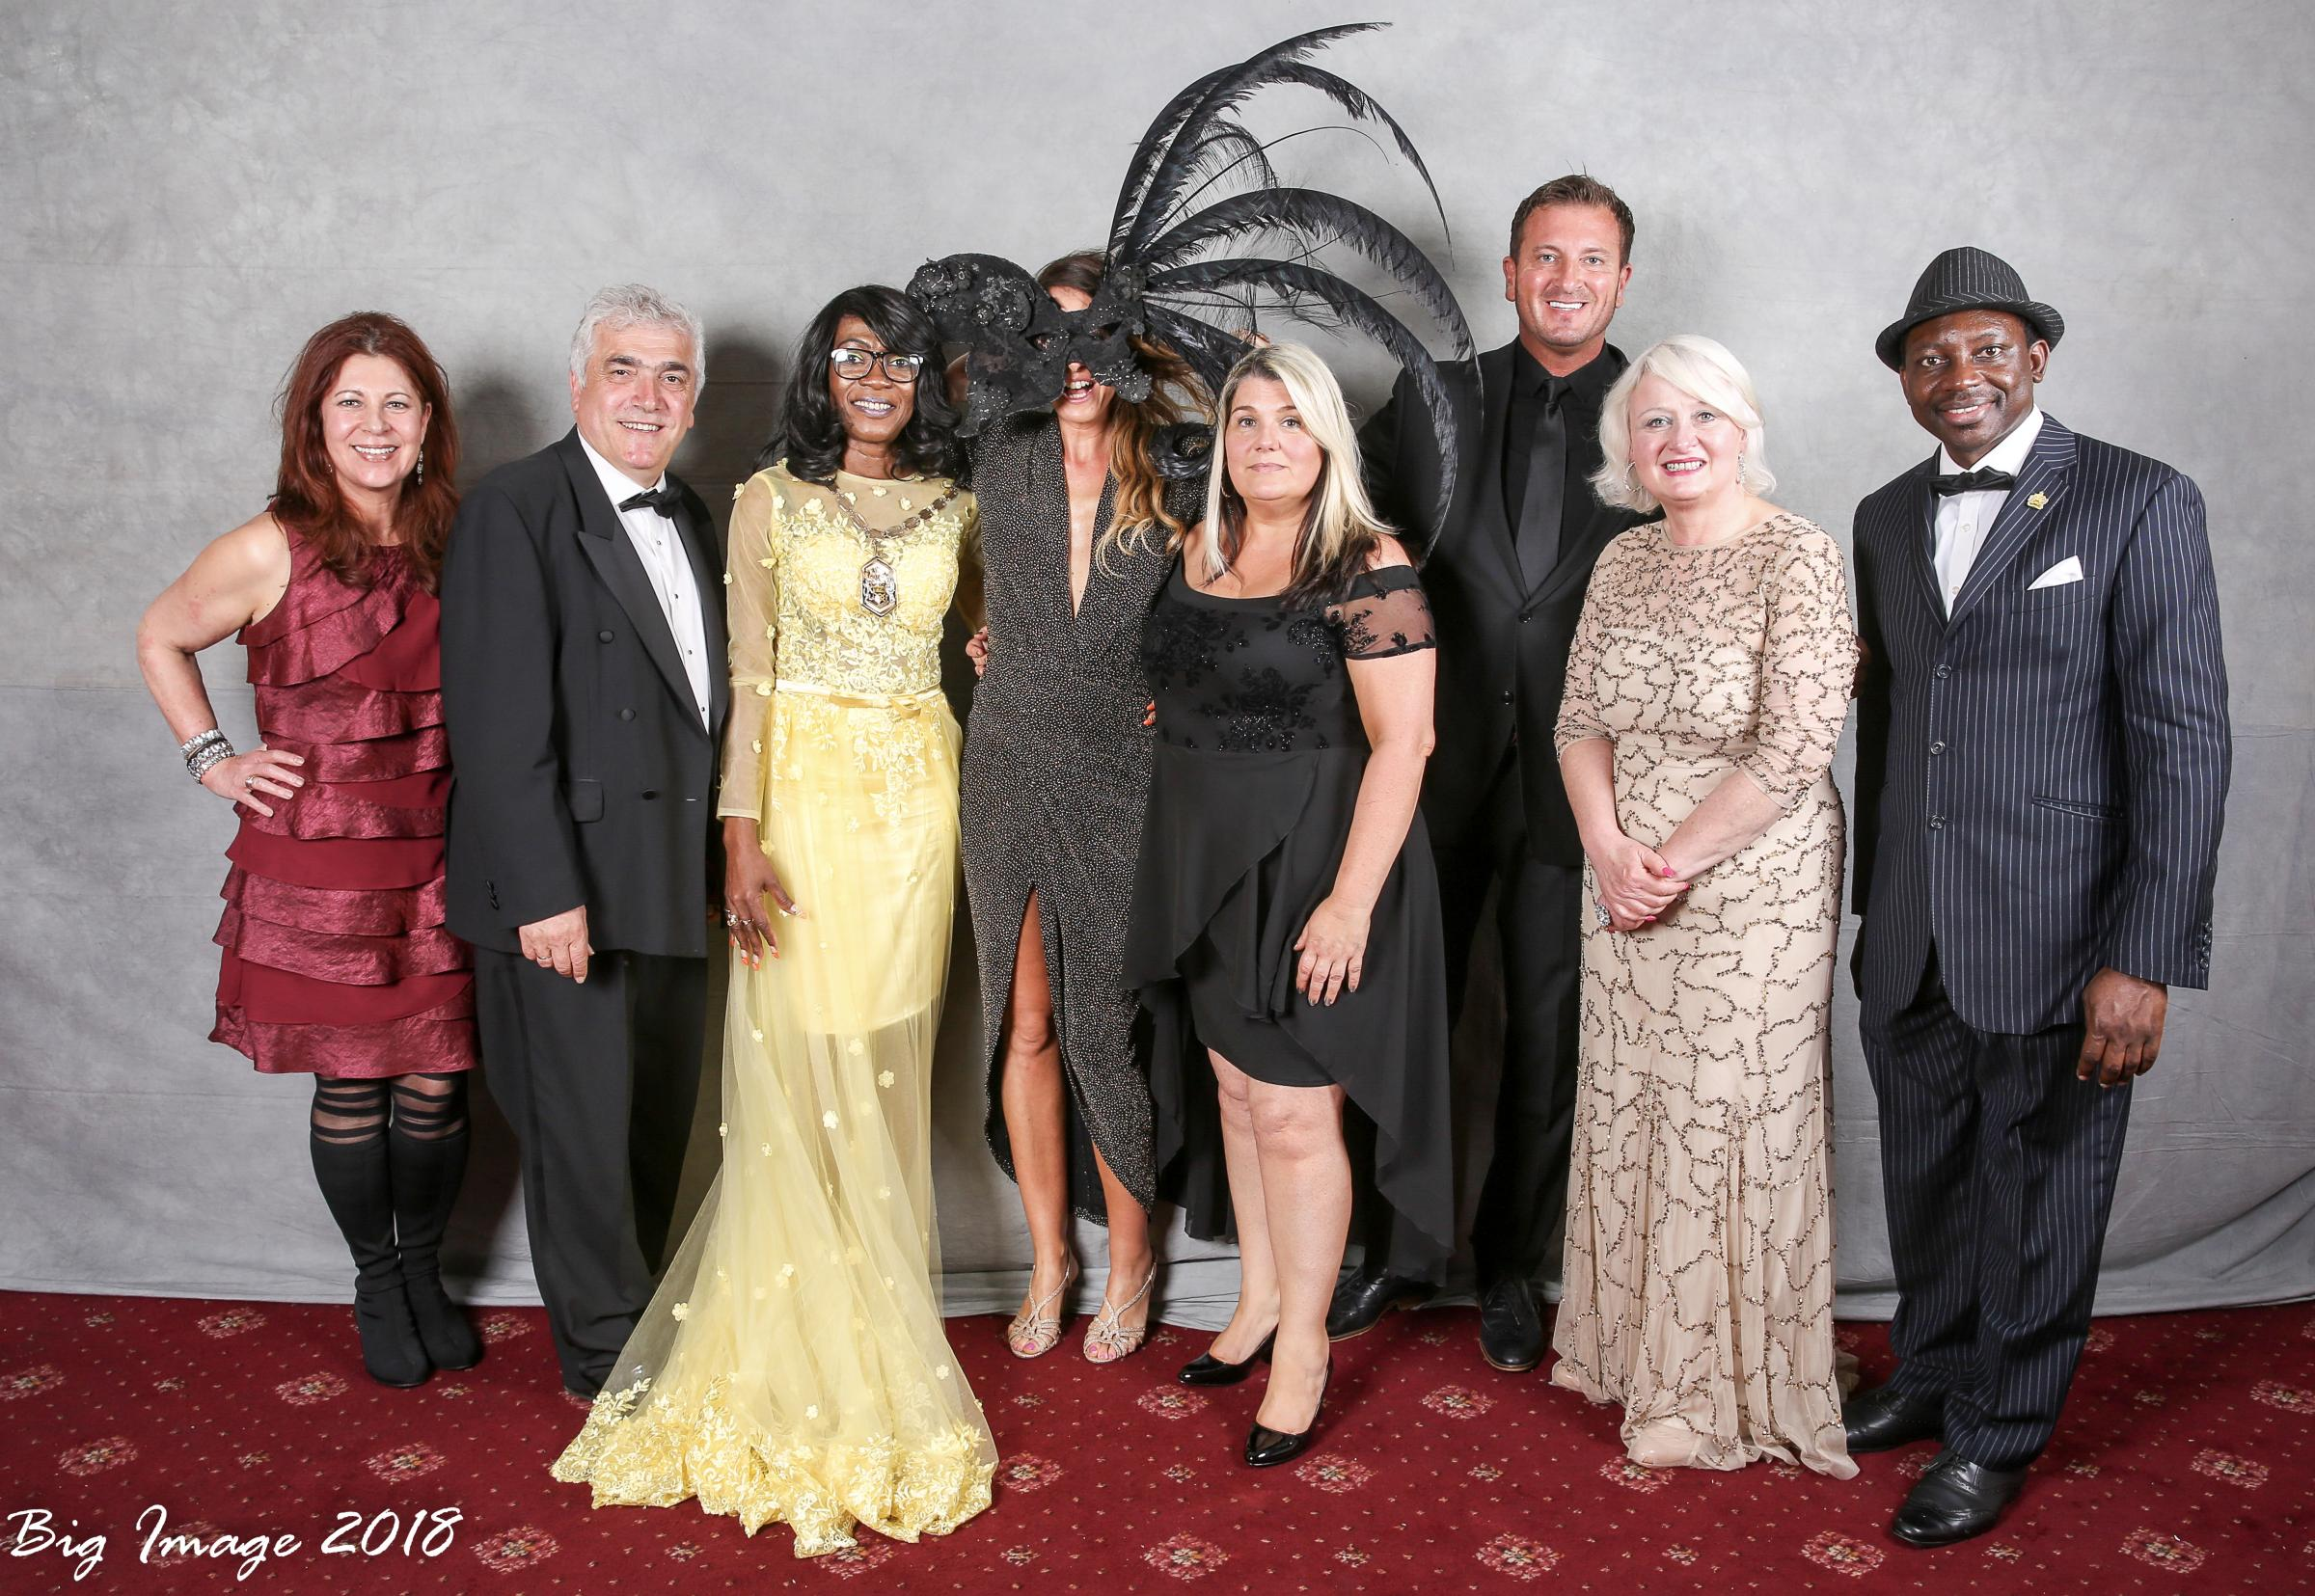 One of the biggest events in Merton takes place with guests wearing outfits suitable for the Masquerade Ball